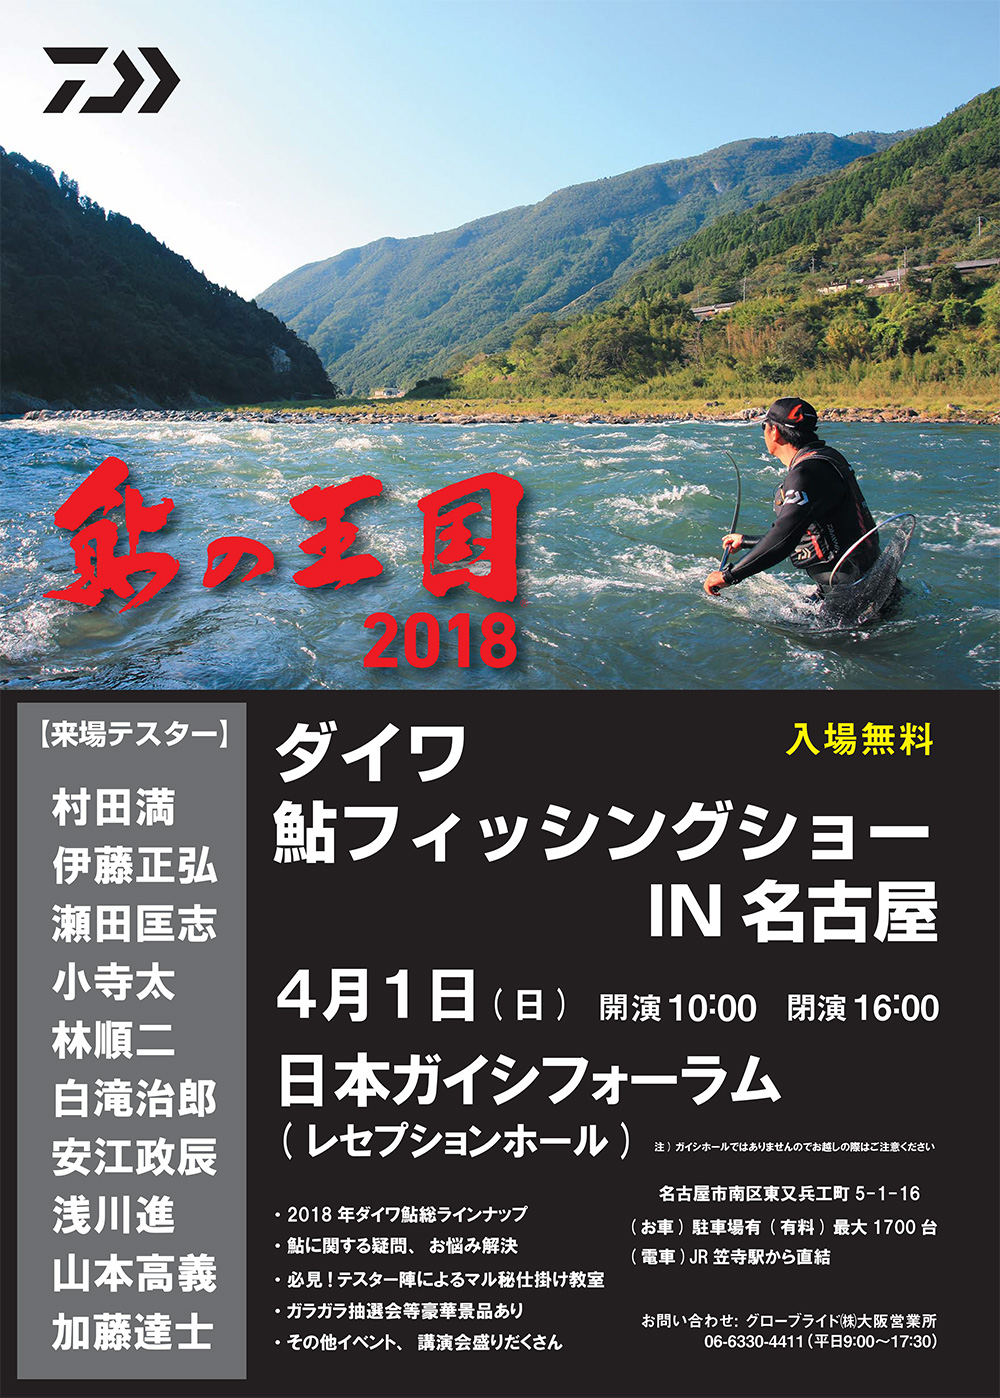 <a href=&quot;http://fishing-you.com/event/180401daiwa&quot;>ダイワ 鮎フィッシングショー IN 名古屋</a>